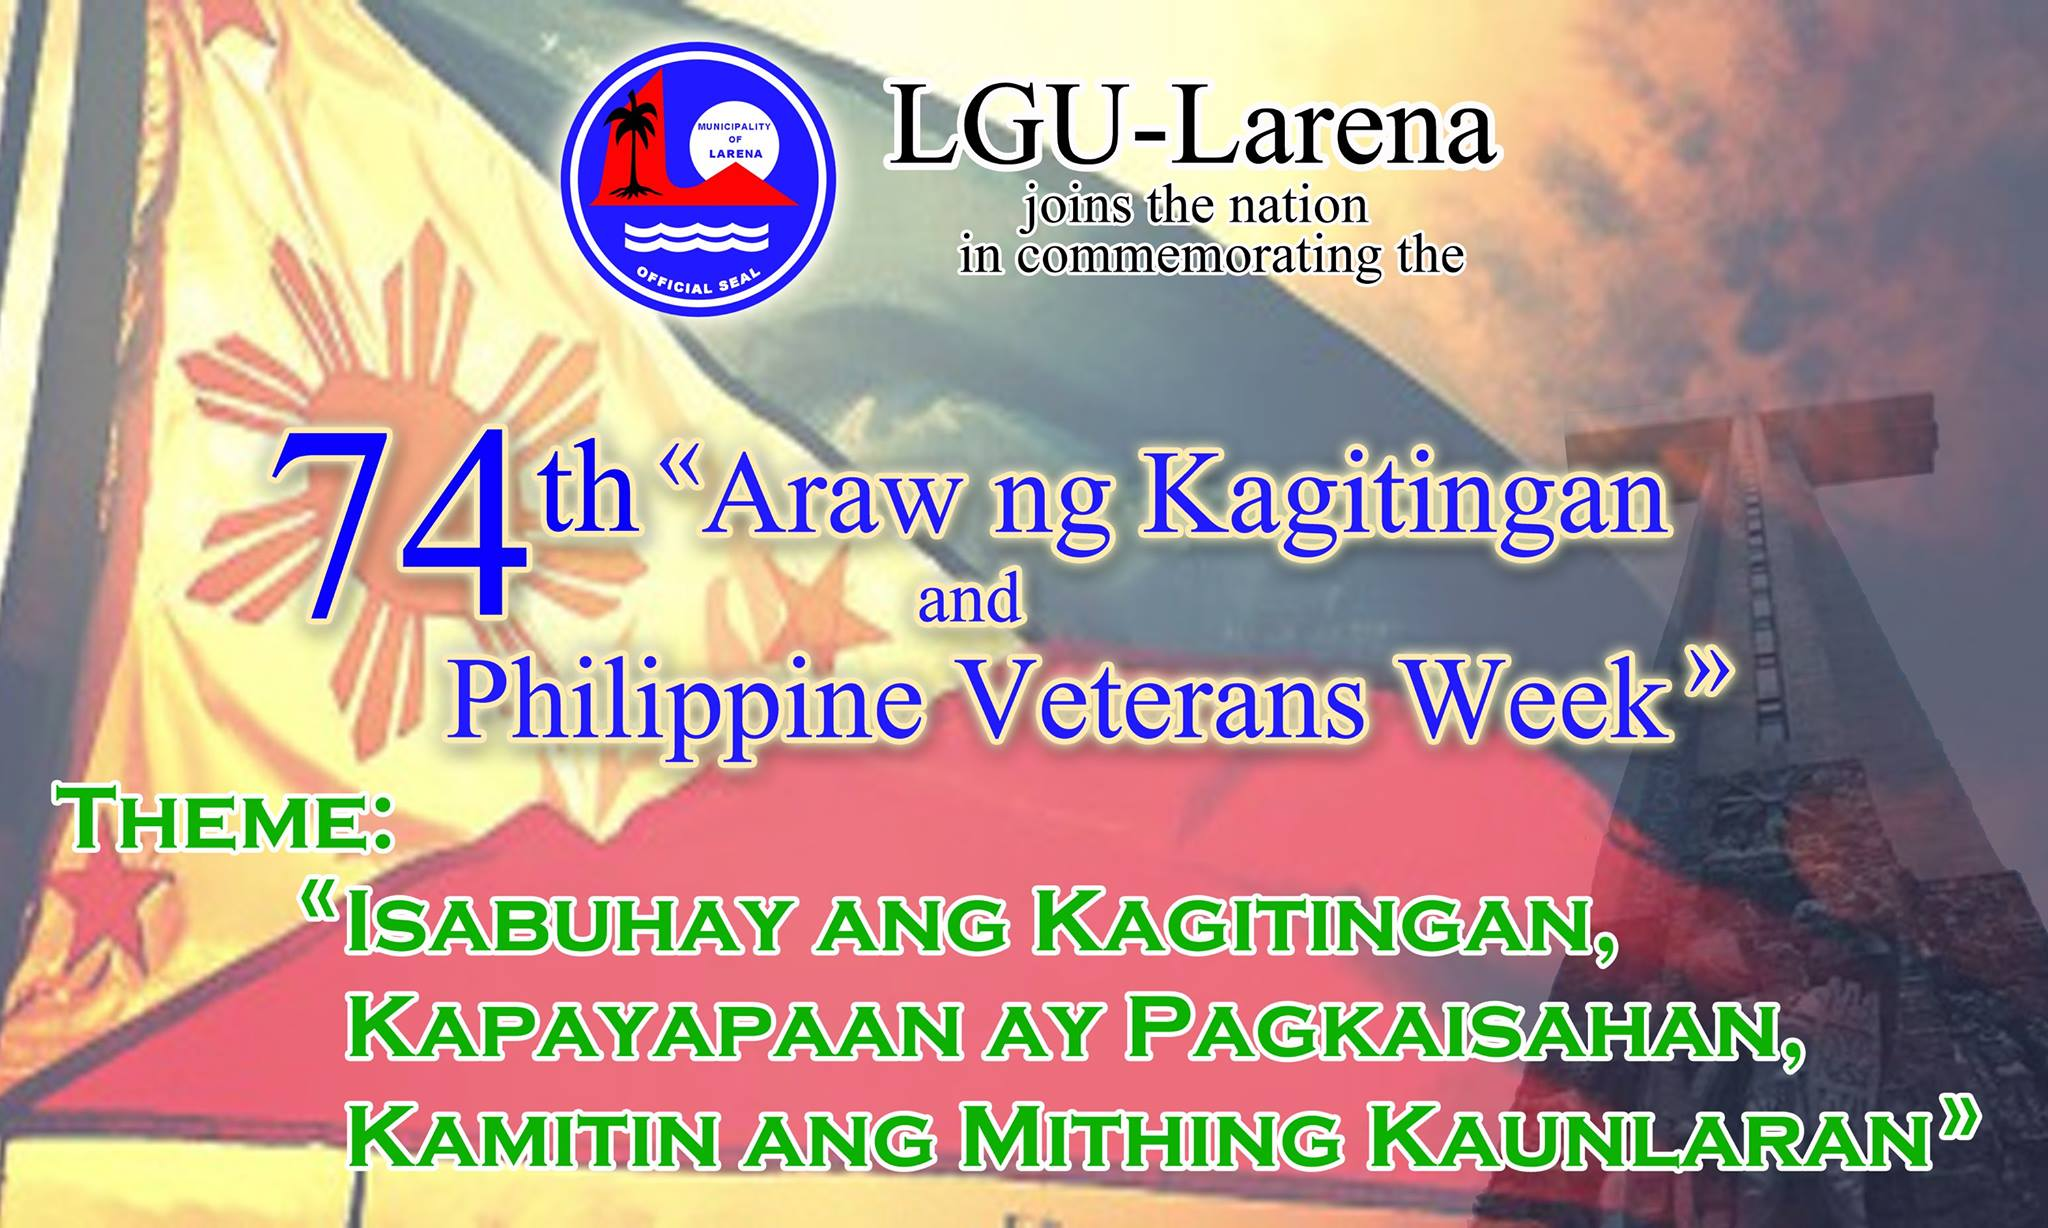 74th-araw-ng-kagitingan-and-philippine-veterans-week